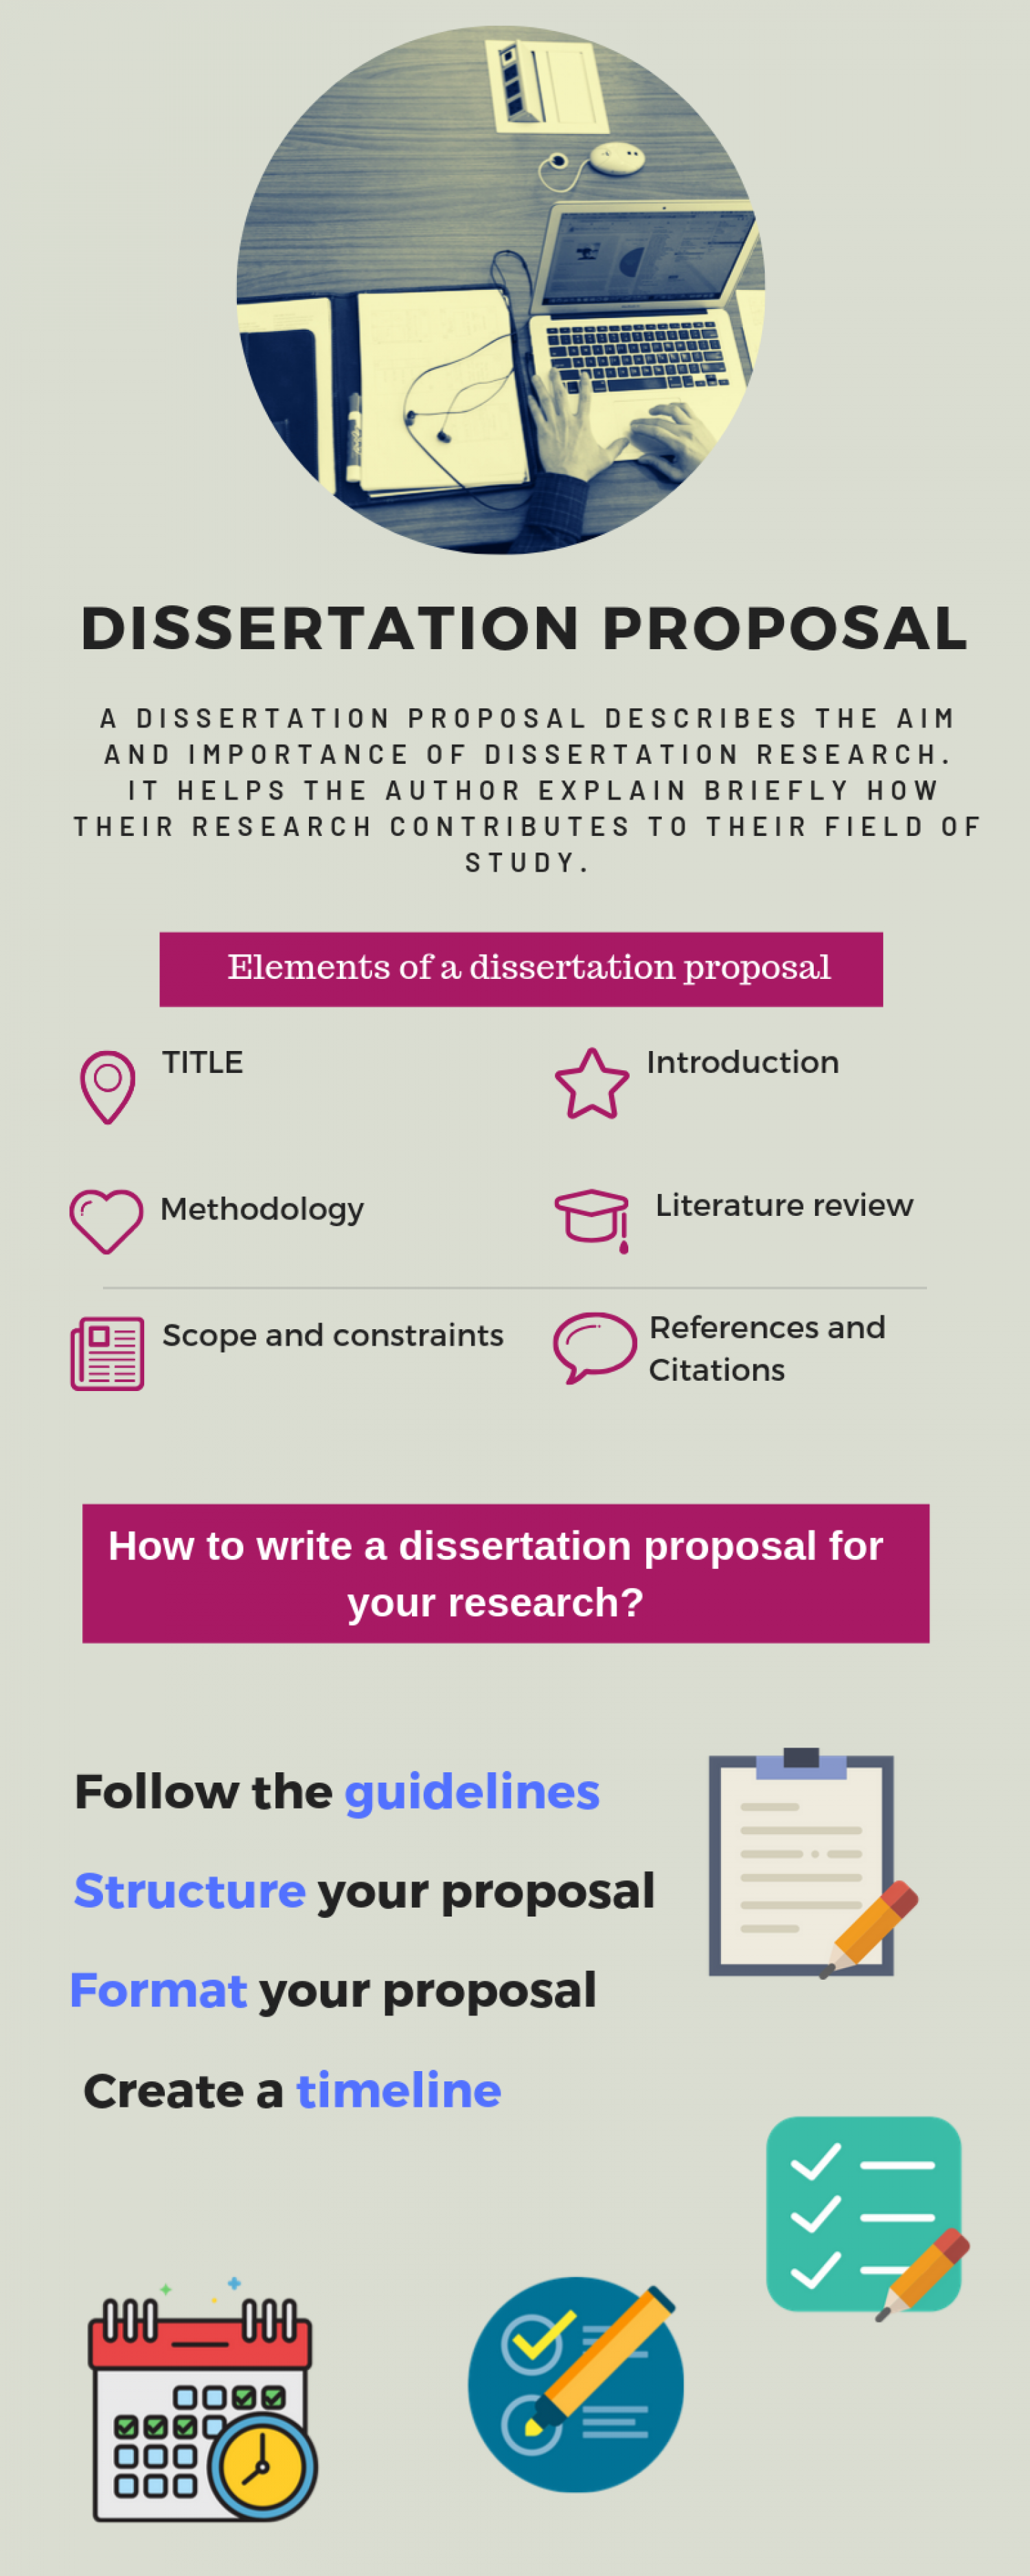 How to write a dissertation proposal? Infographic